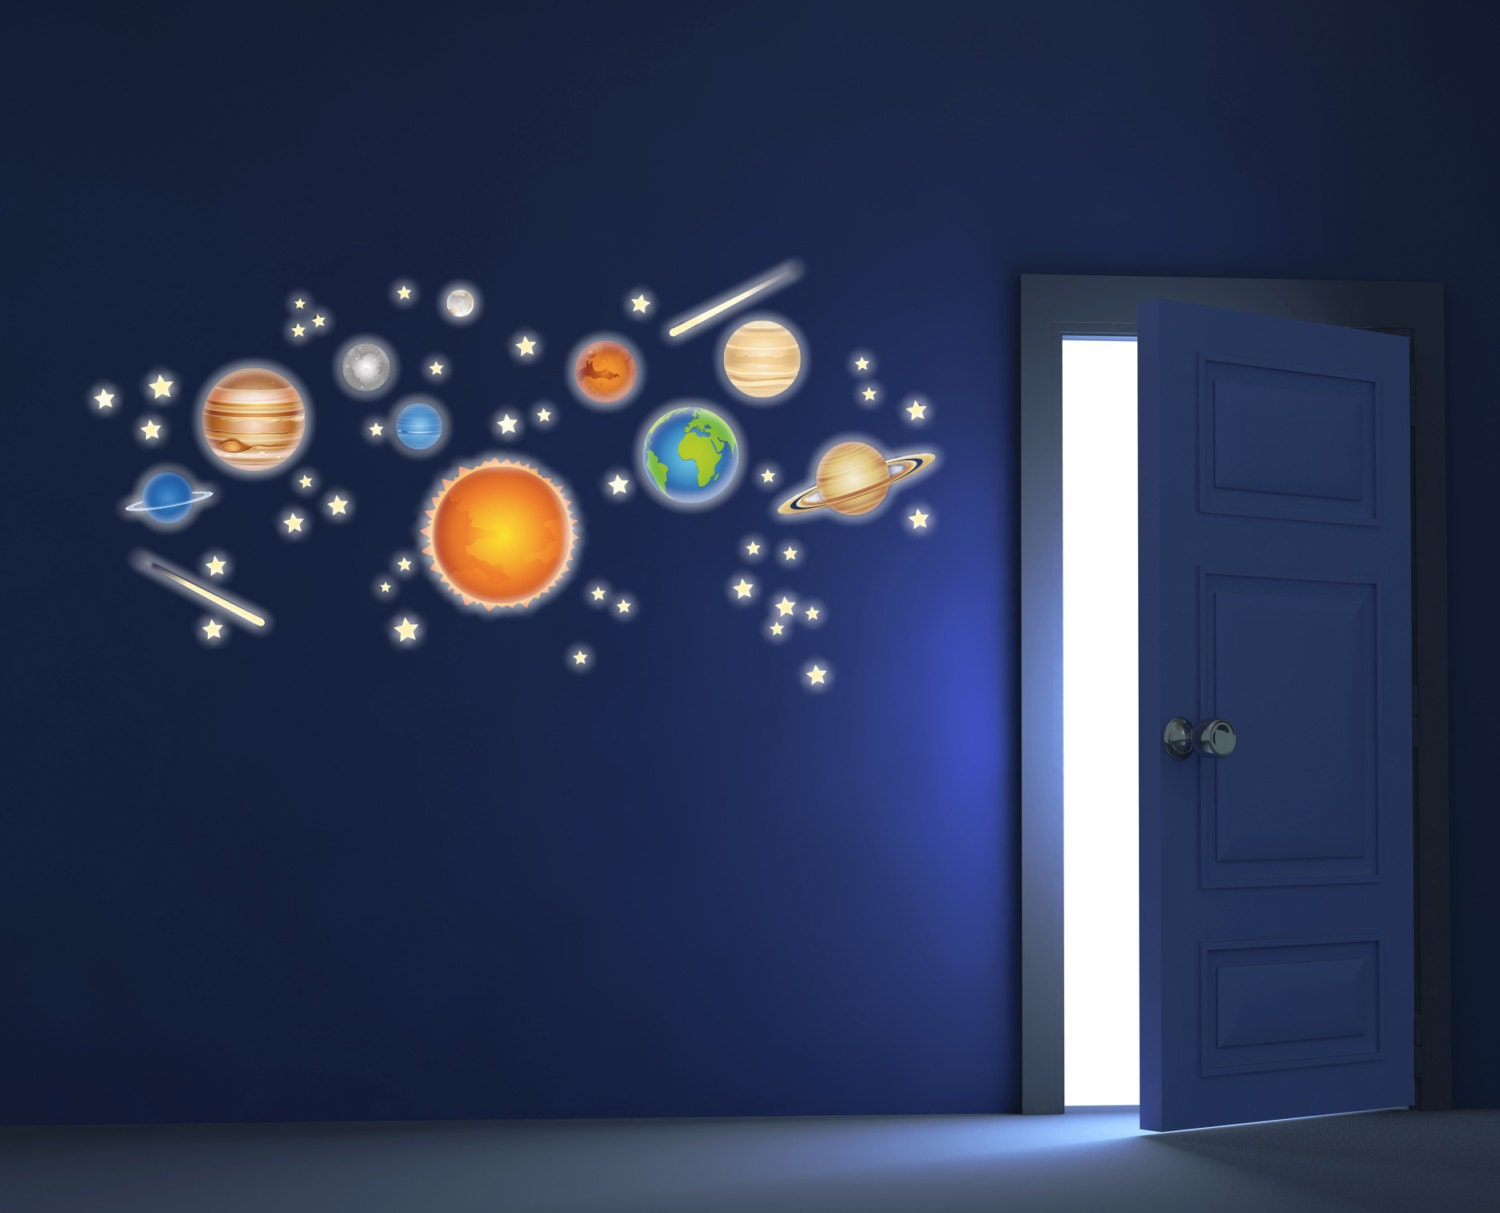 Planets solar system space wall decals fluo wall stickers - Wall stickers camerette ...